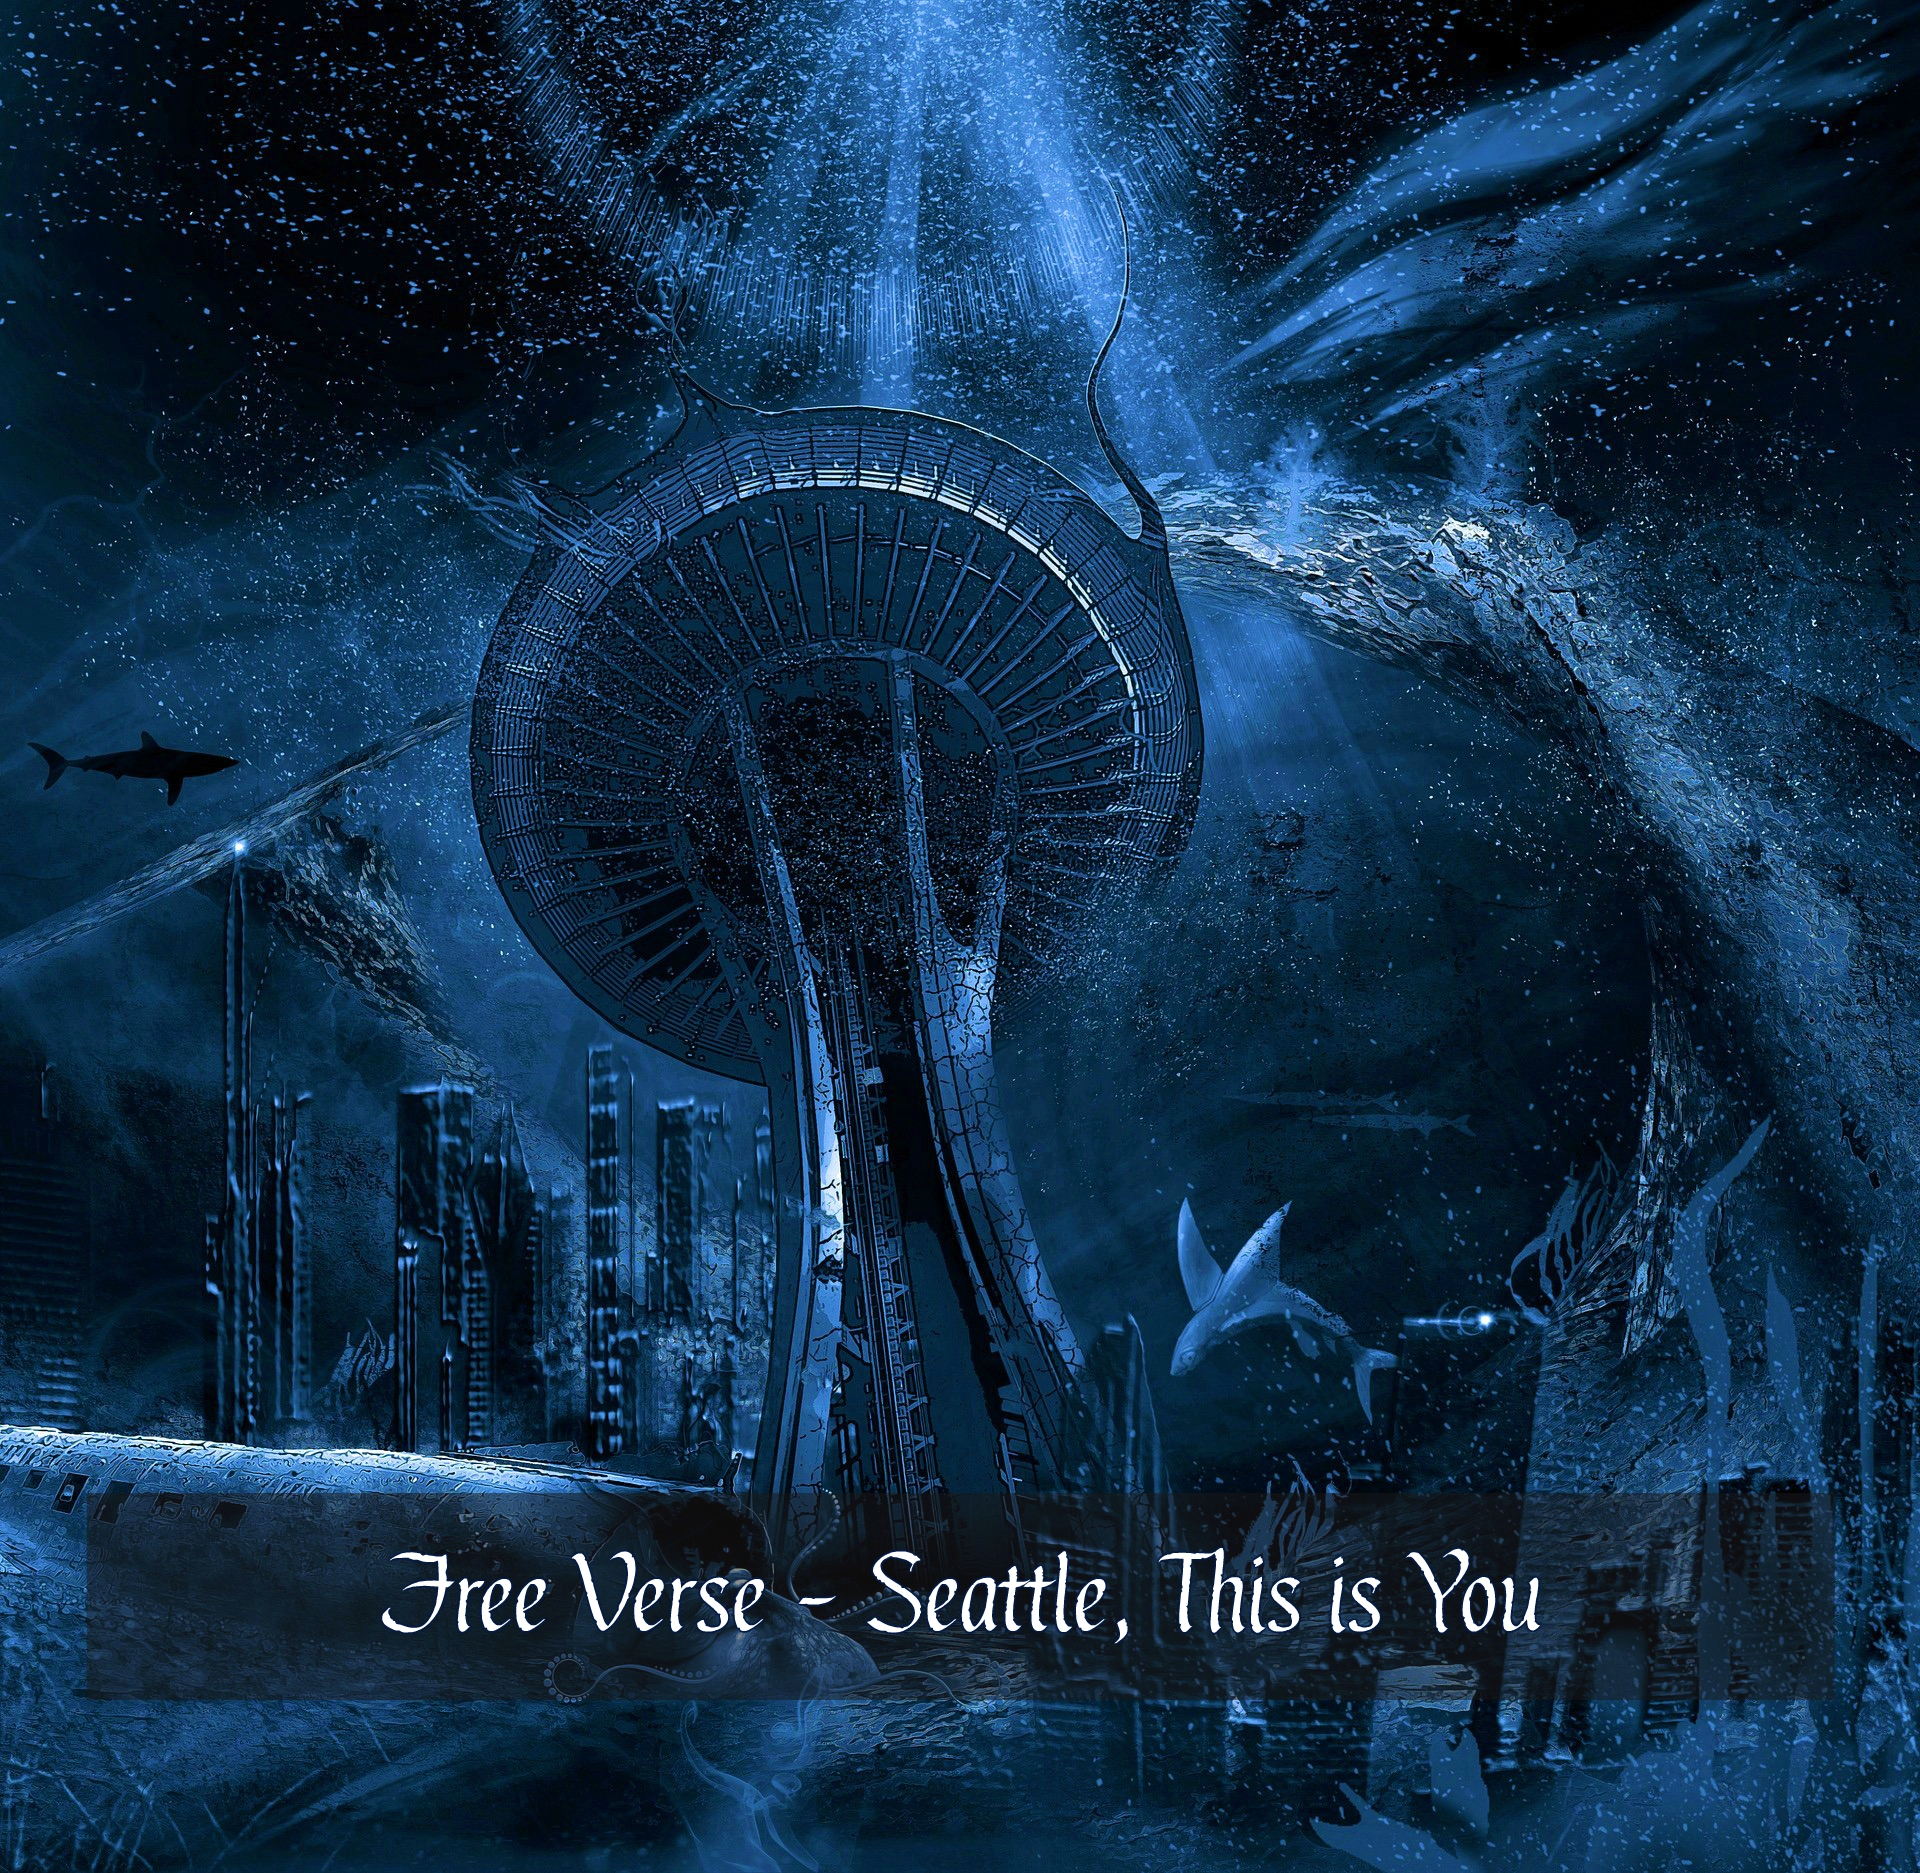 Free Verse Seattle This is You